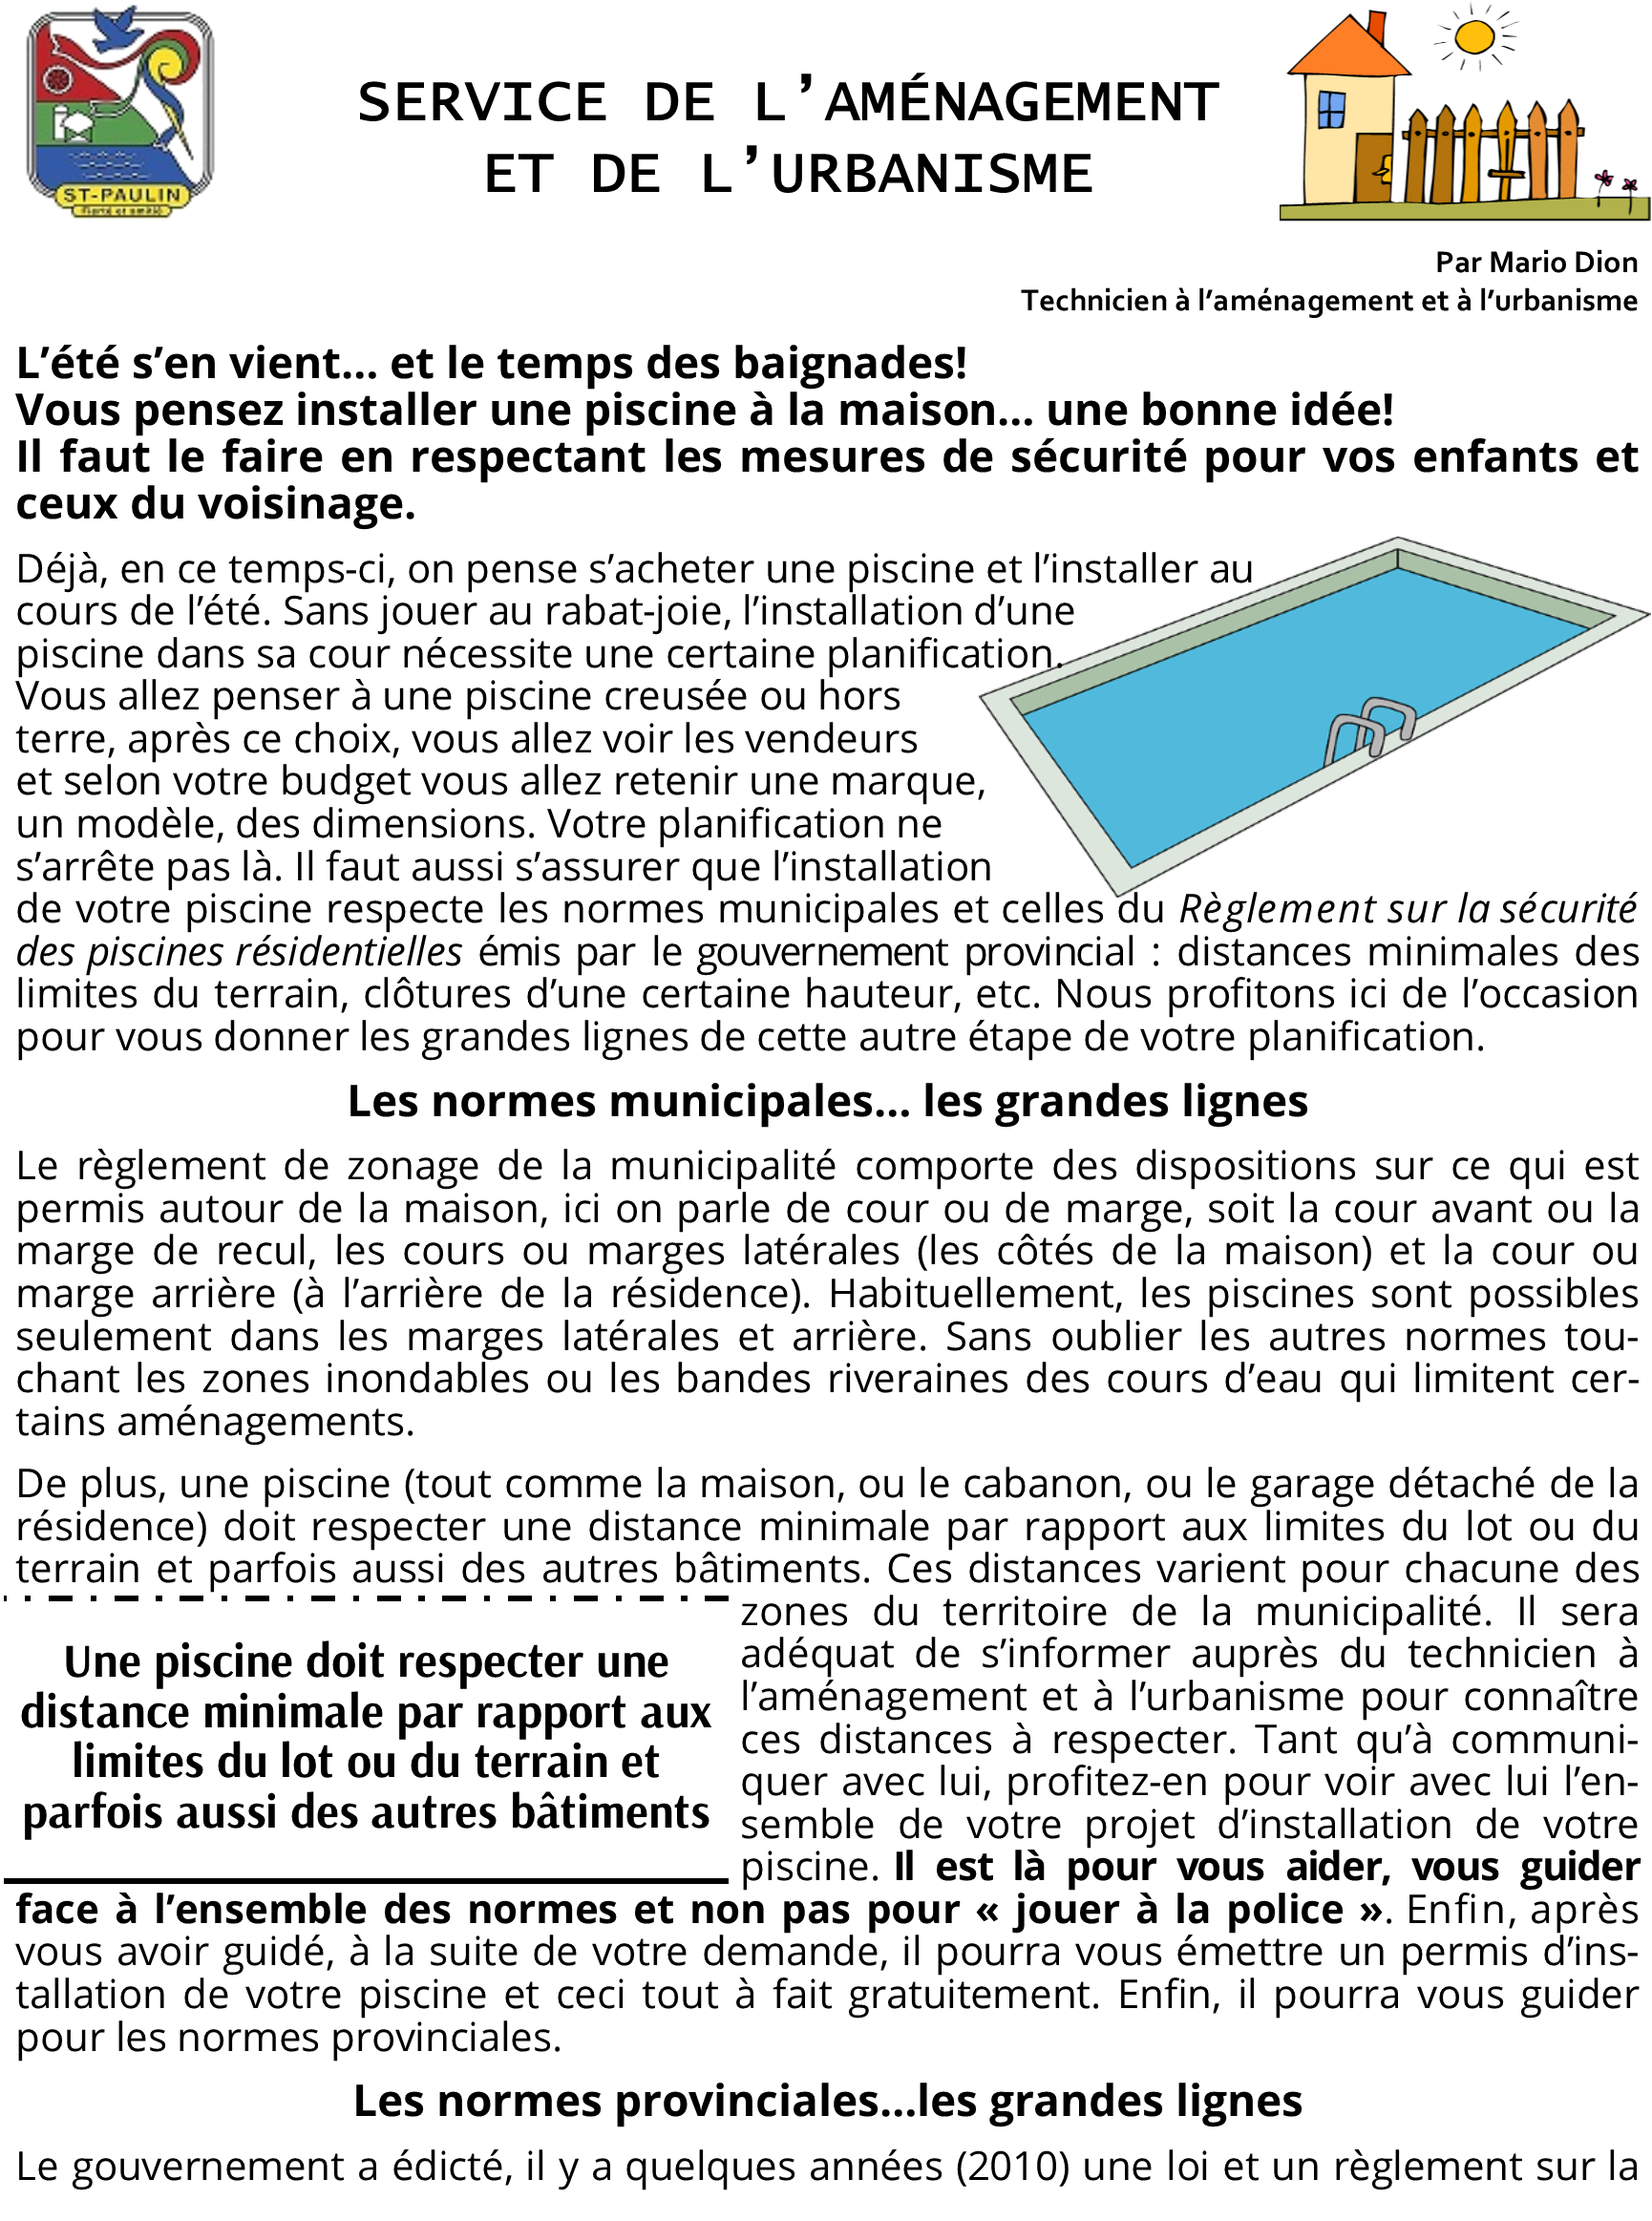 article.piscines p1